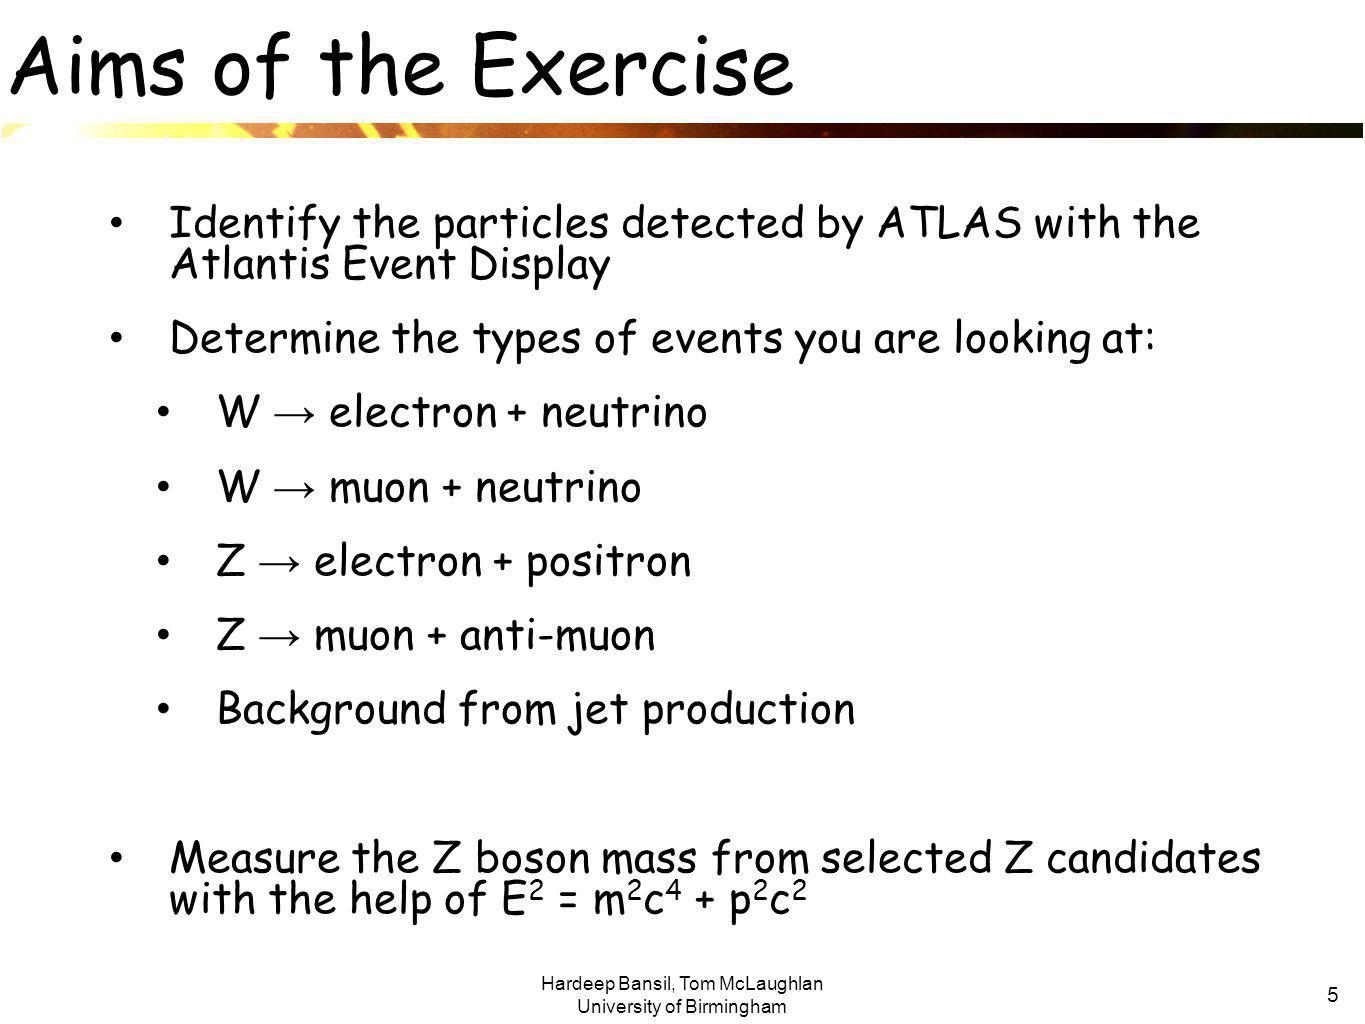 Hardeep Bansil, Tom McLaughlan University of Birmingham 5 Aims of the Exercise Identify the particles detected by ATLAS with the Atlantis Event Display Determine the types of events you are looking at: W → electron + neutrino W → muon + neutrino Z → electron + positron Z → muon + anti-muon Background from jet production Measure the Z boson mass from selected Z candidates with the help of E 2 = m 2 c 4 + p 2 c 2